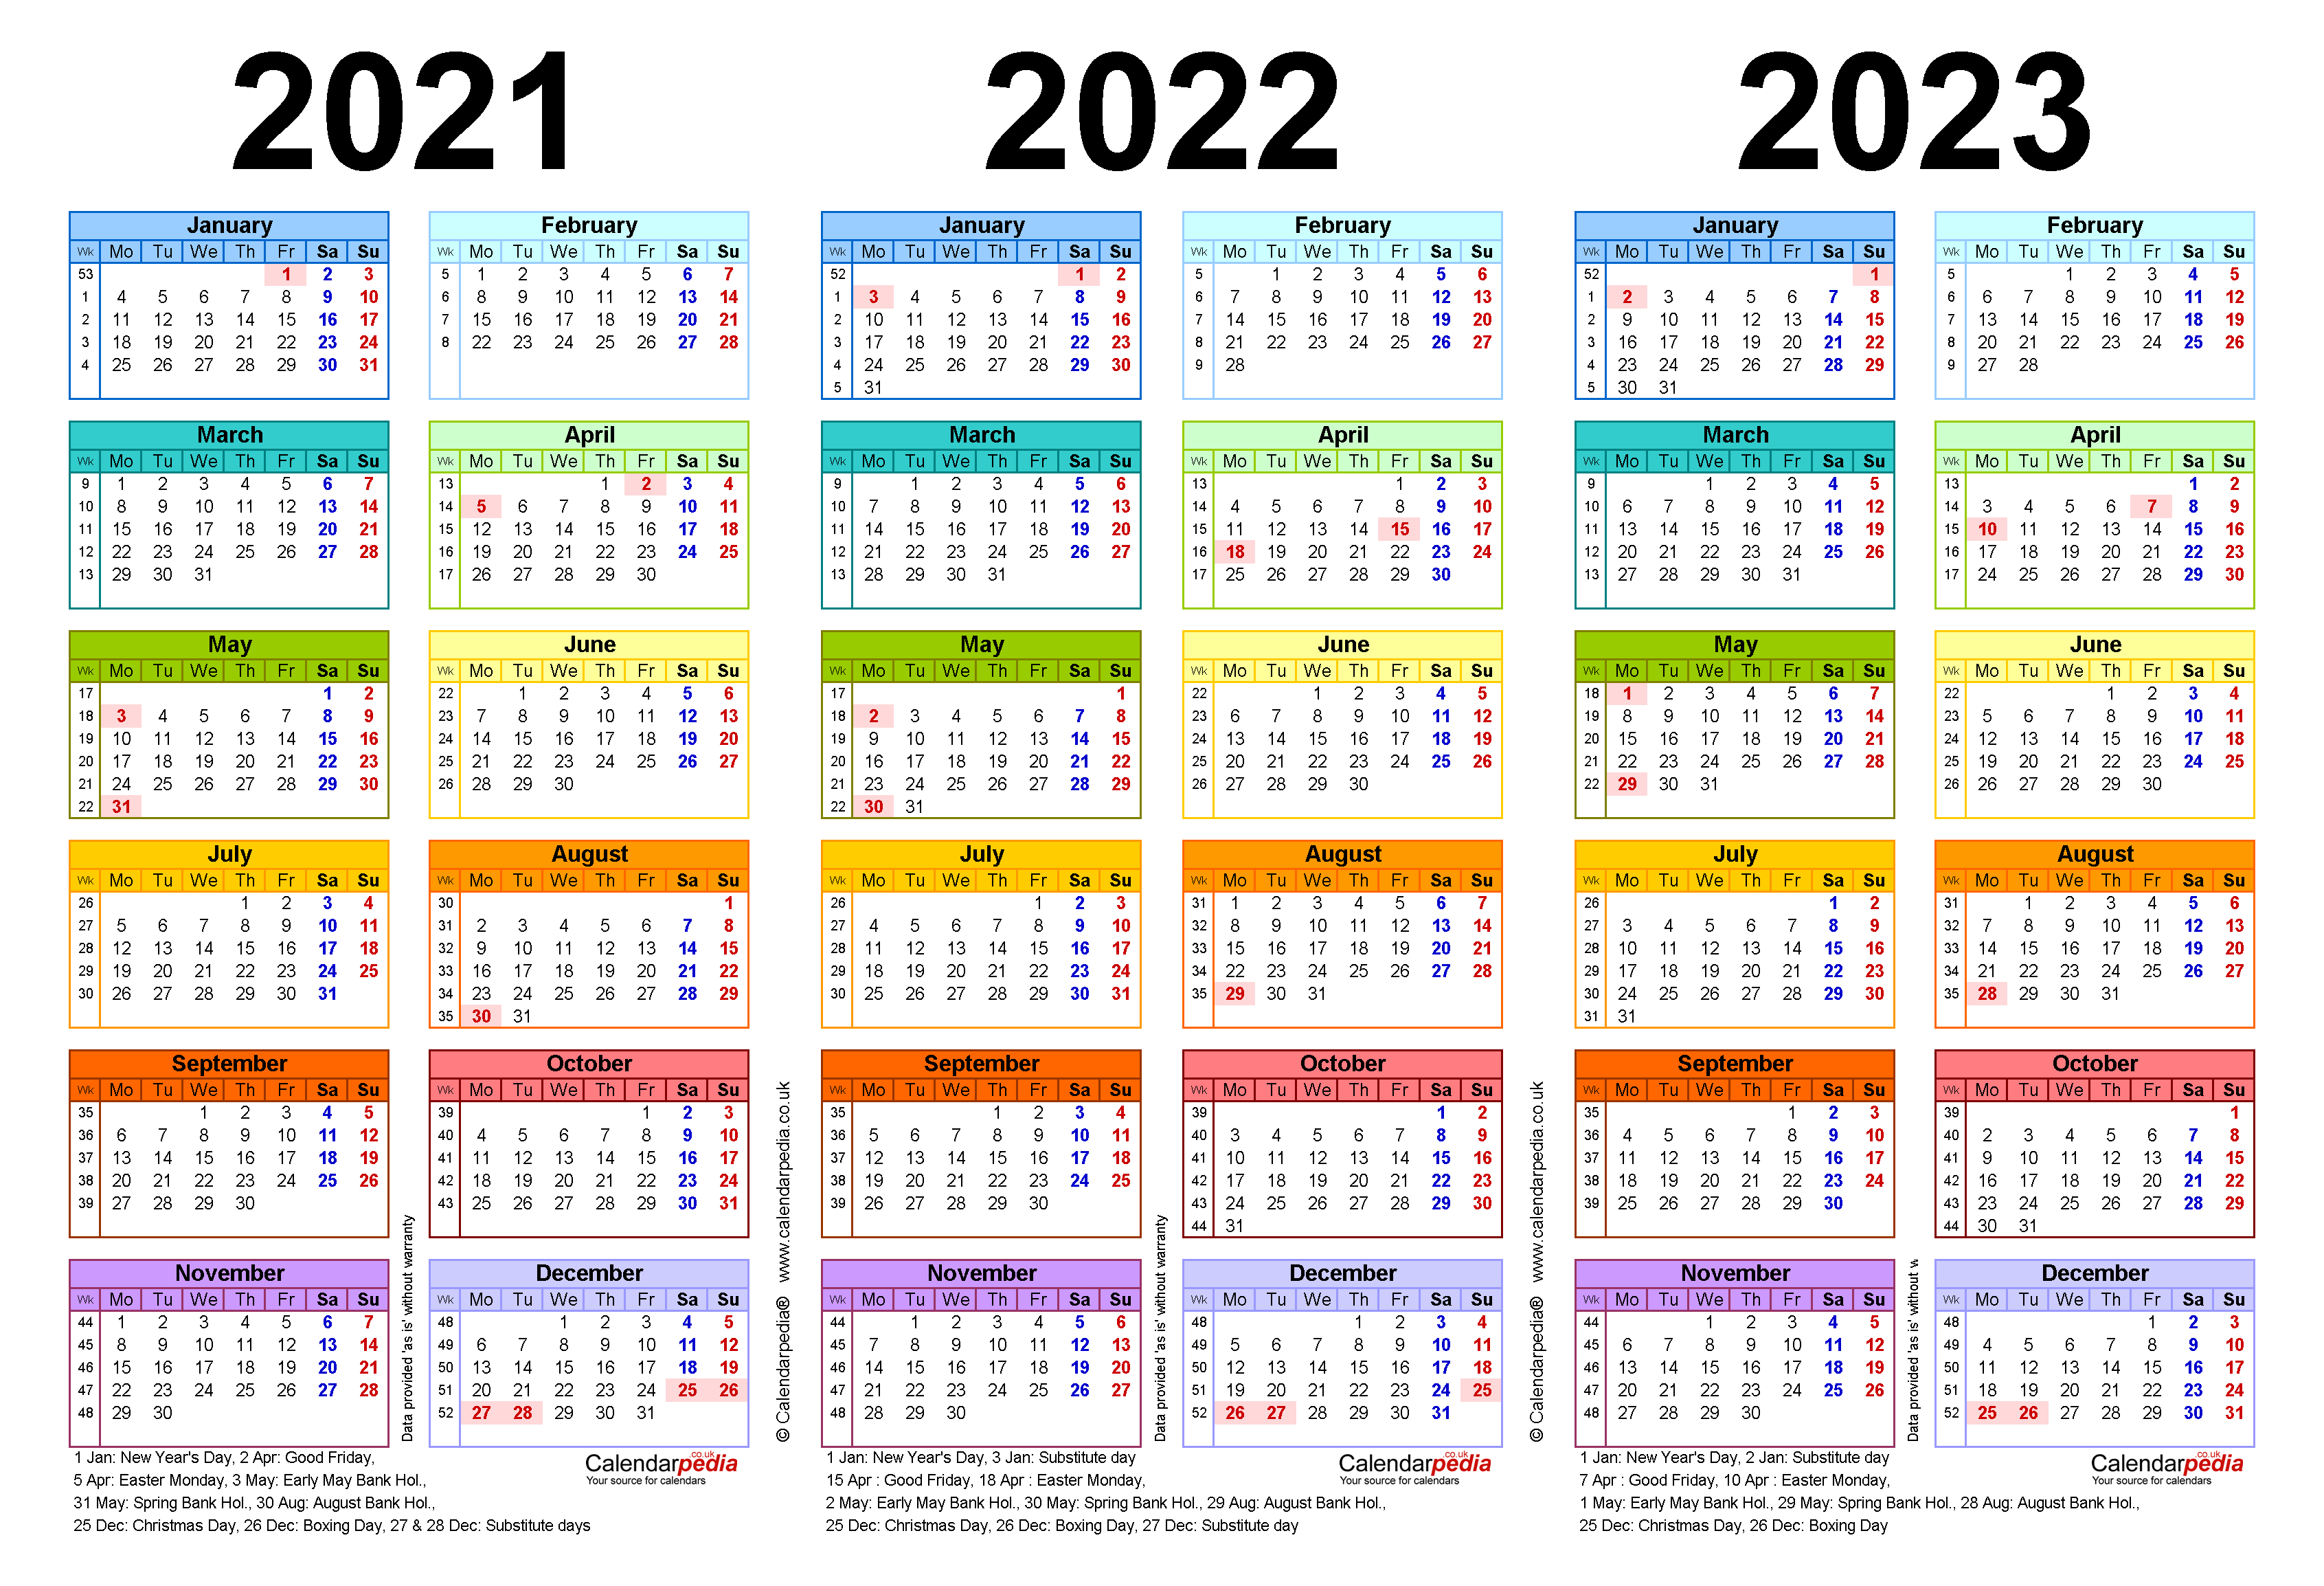 Three Year Calendars For 2021, 2022 & 2023 (Uk) For Pdf throughout 3 Year Calendar 2020 To 2023